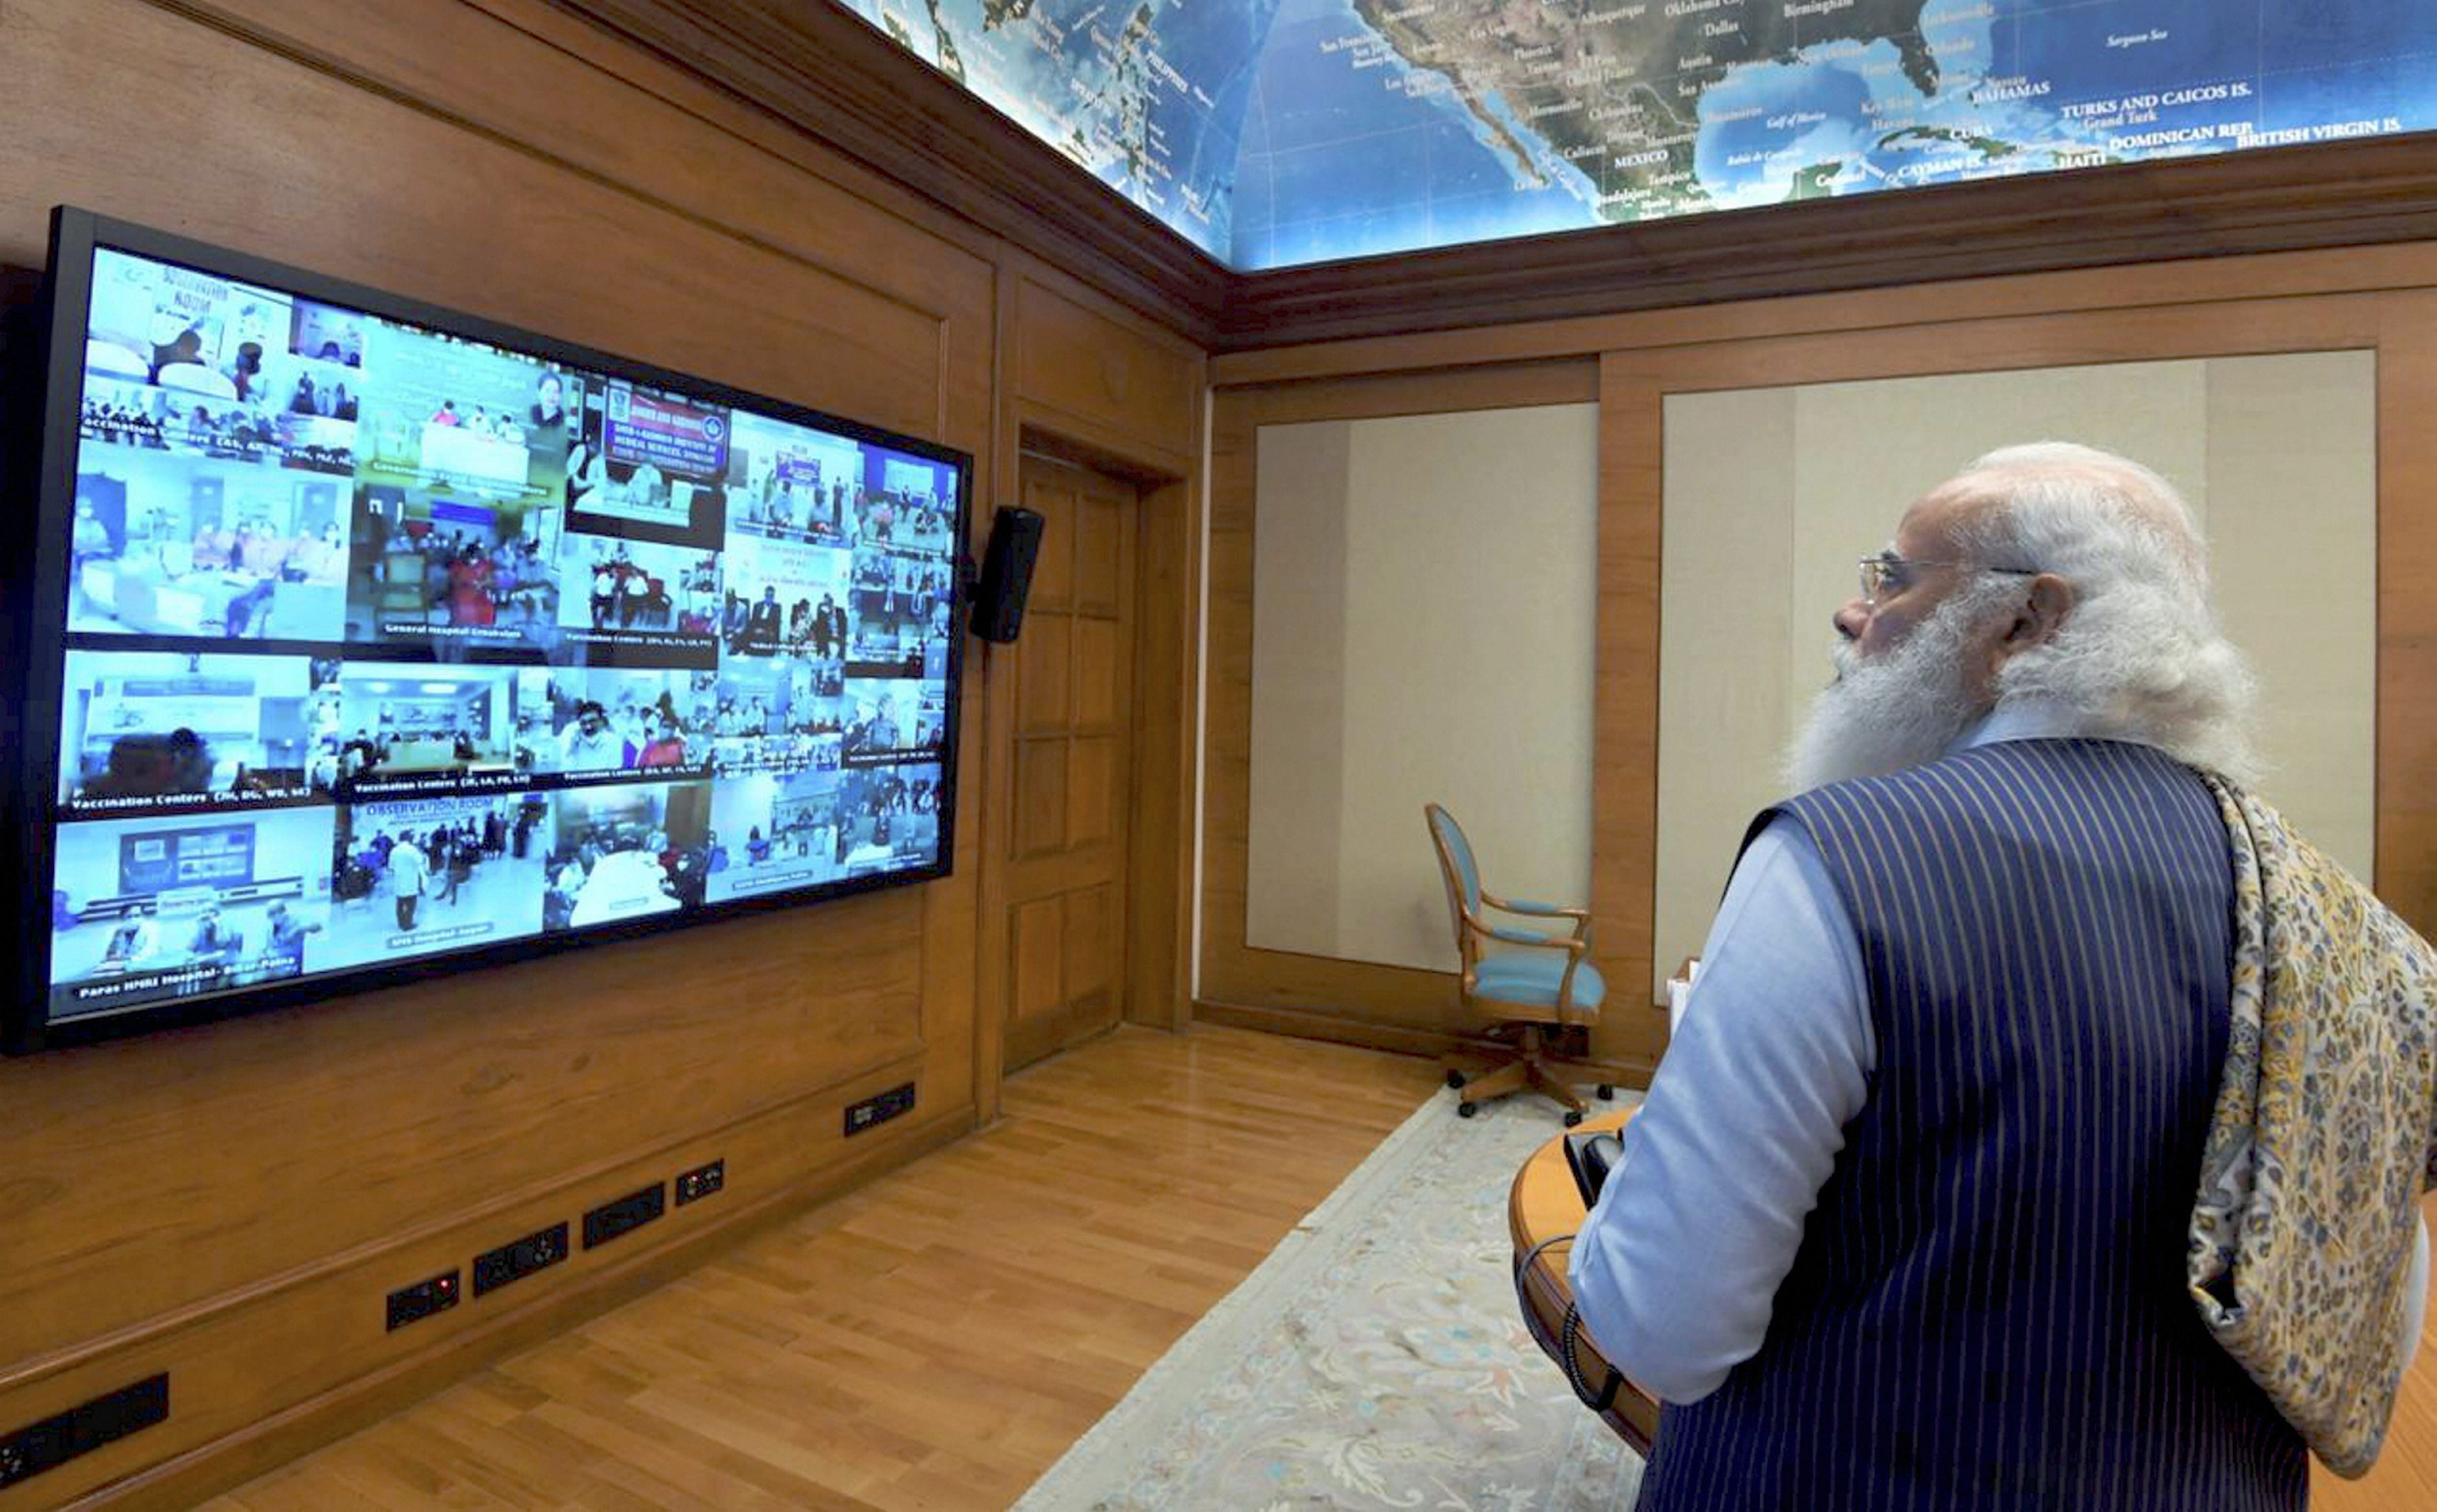 PM Modi launched pan India rollout of COVID-19 vaccination drive via video conferencing